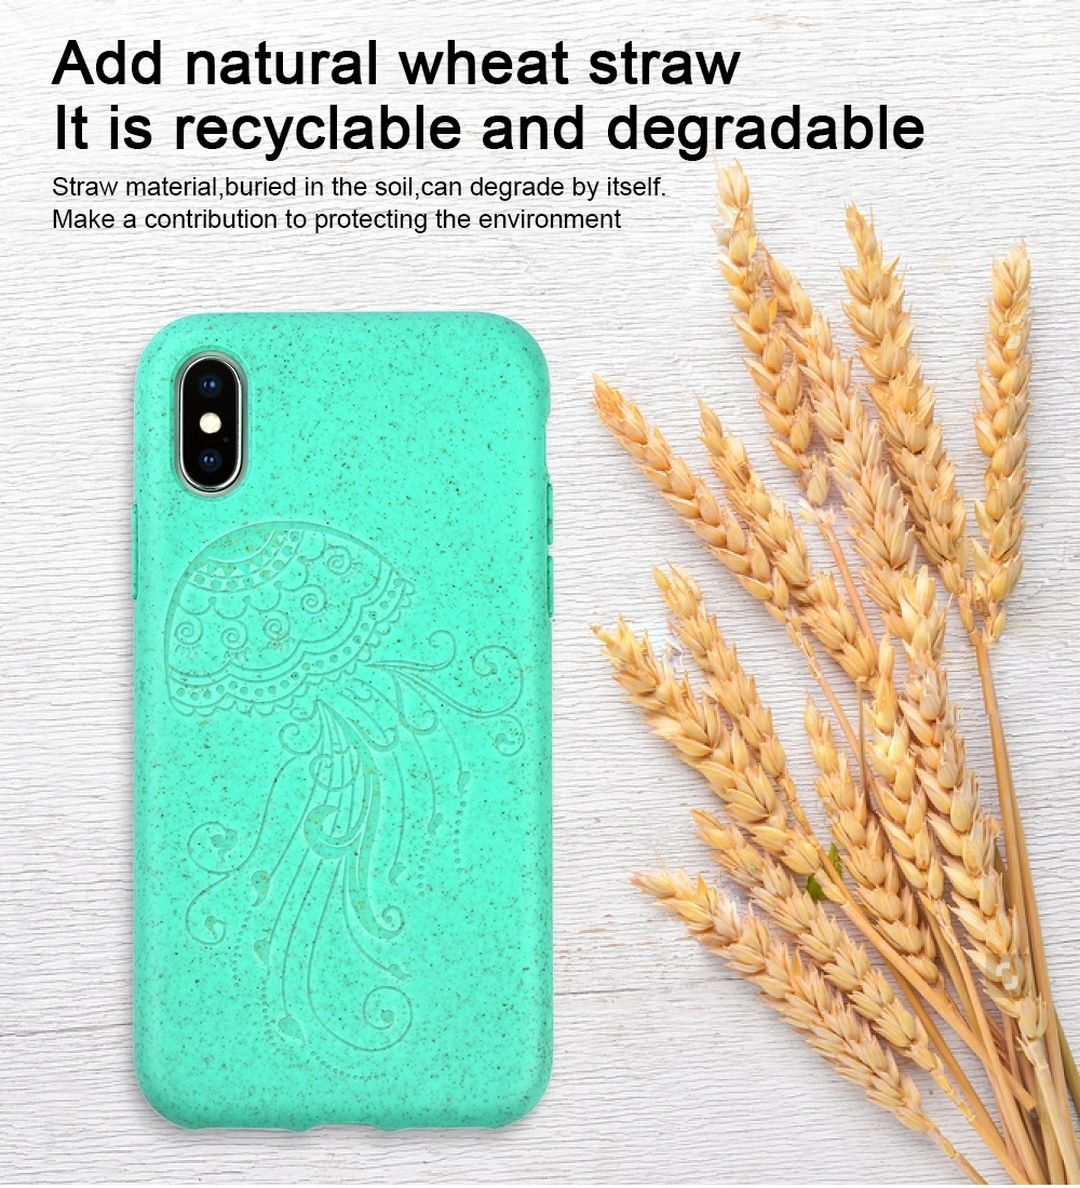 OEM Customized logo Eco-friendly Biodegradable Recycle Organic Wheat Straw Cell Phone Case For iphone